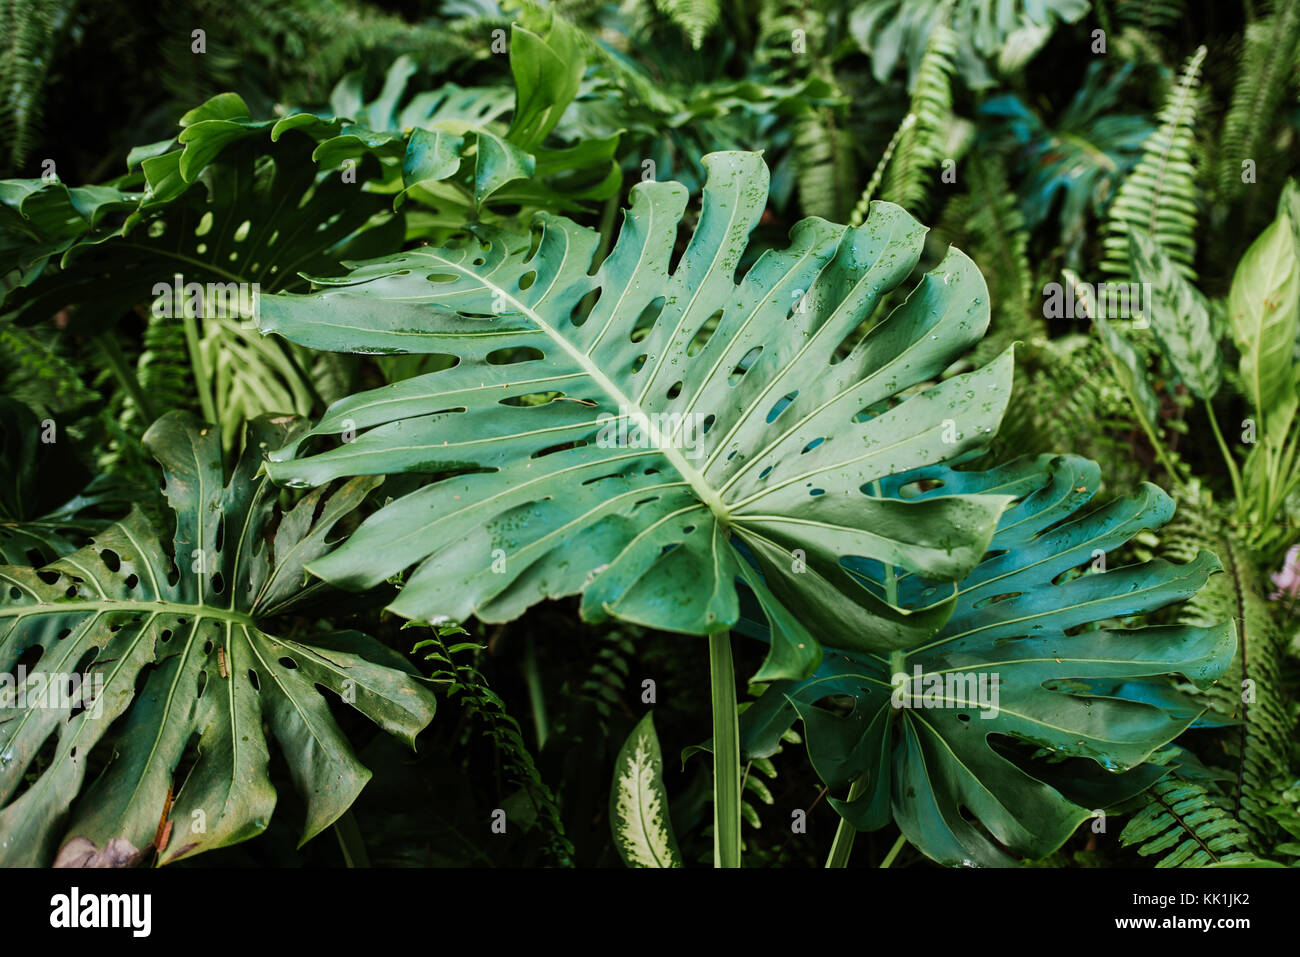 Grean leaf of Monstera plant in forest - Stock Image